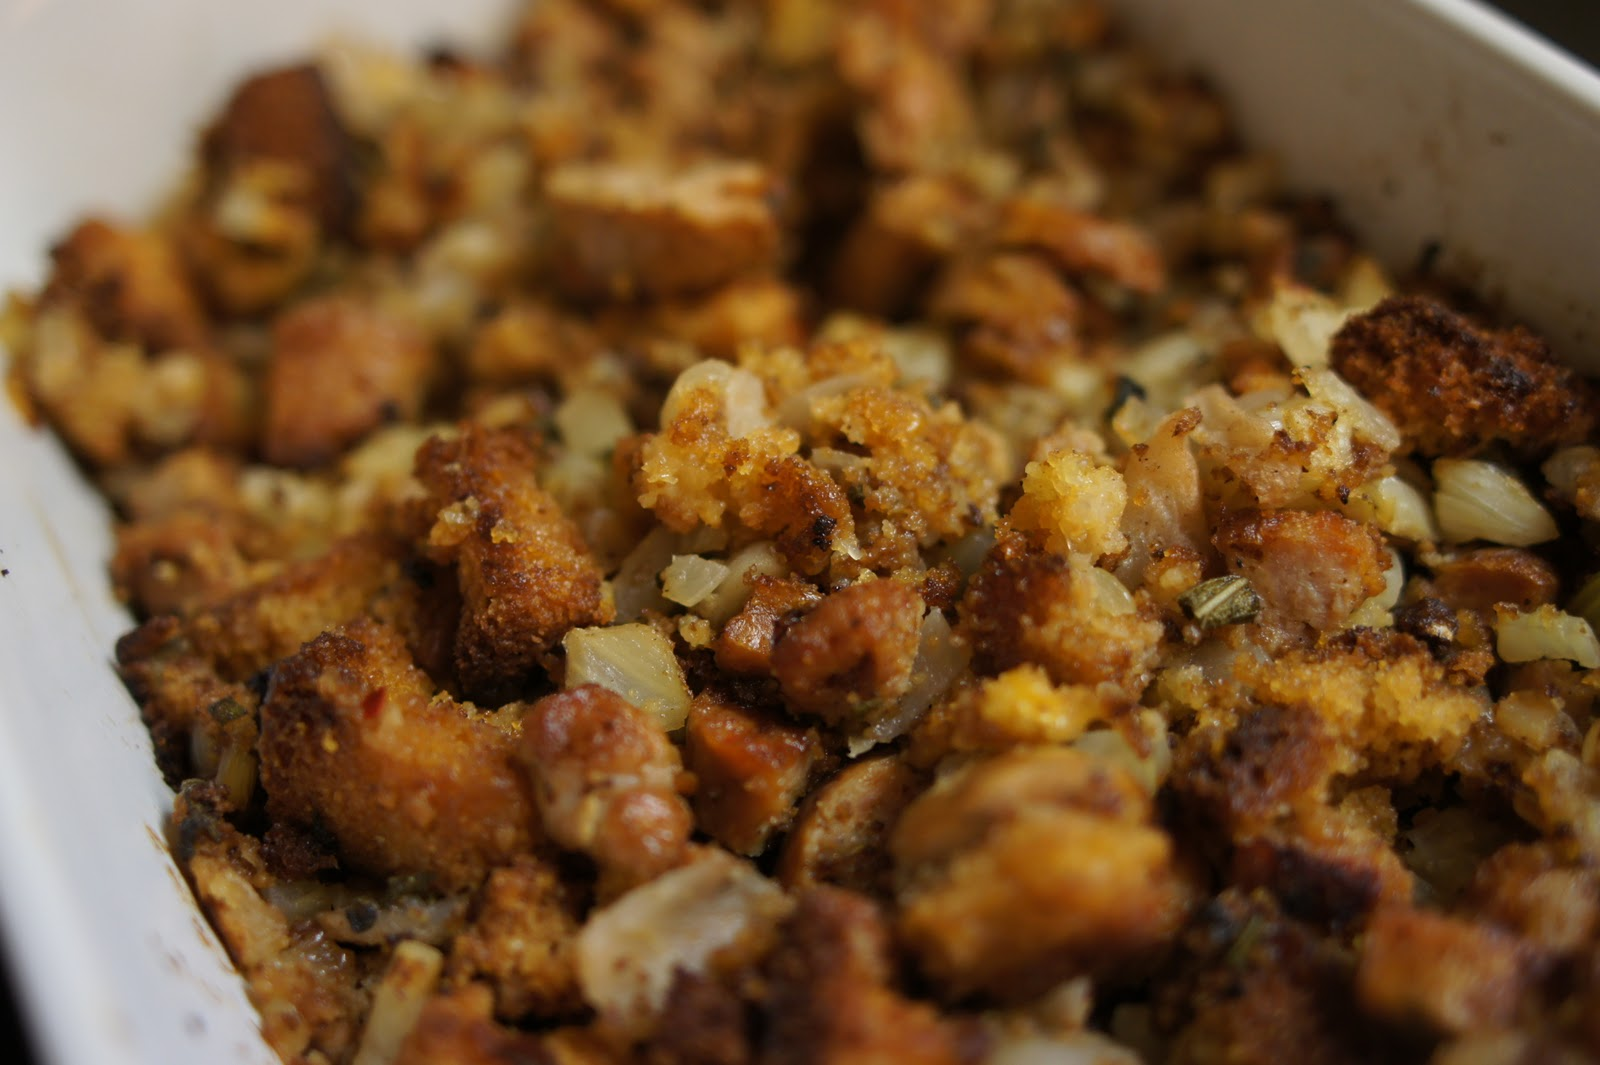 cornbread stuffing with apple, fennel and spicy sausage